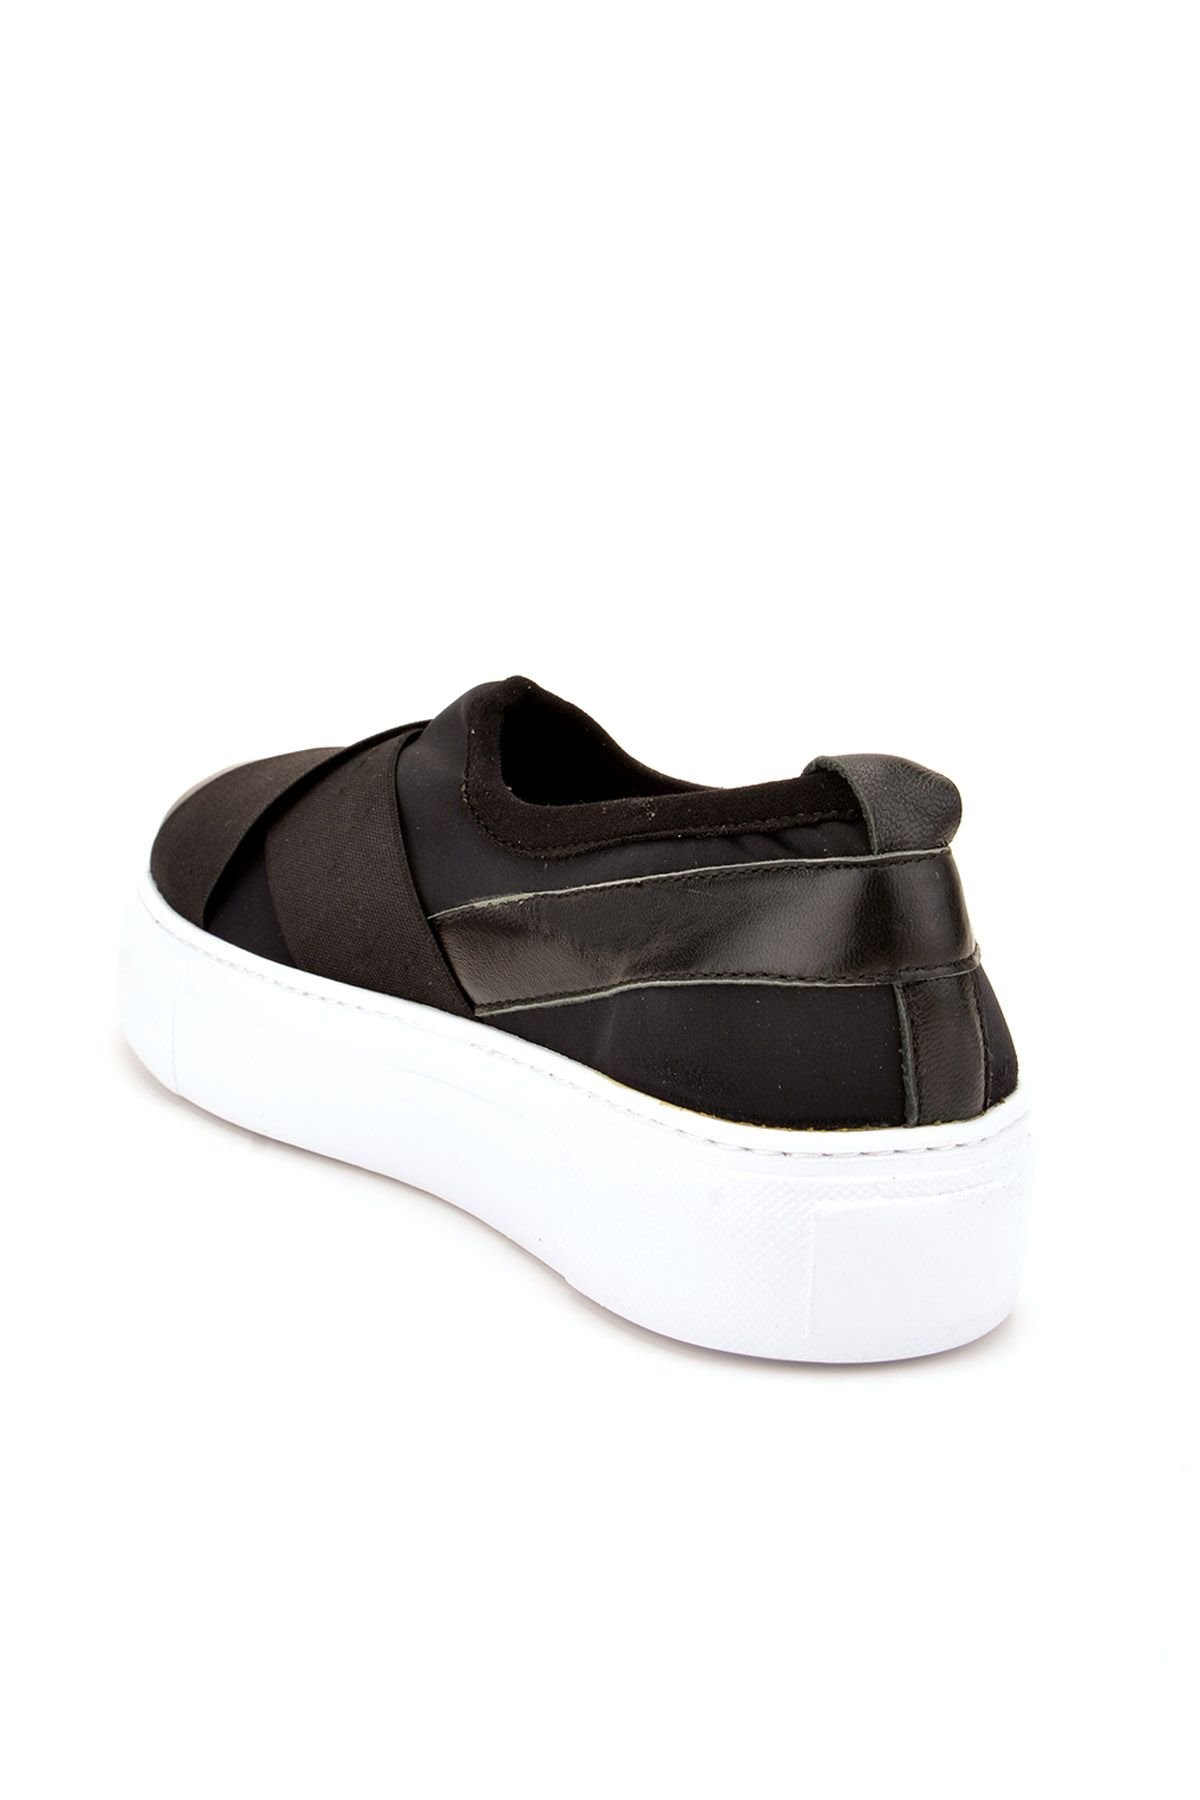 Pegia Voyage Casual Shoes From Genuine Leather REC-011 Black